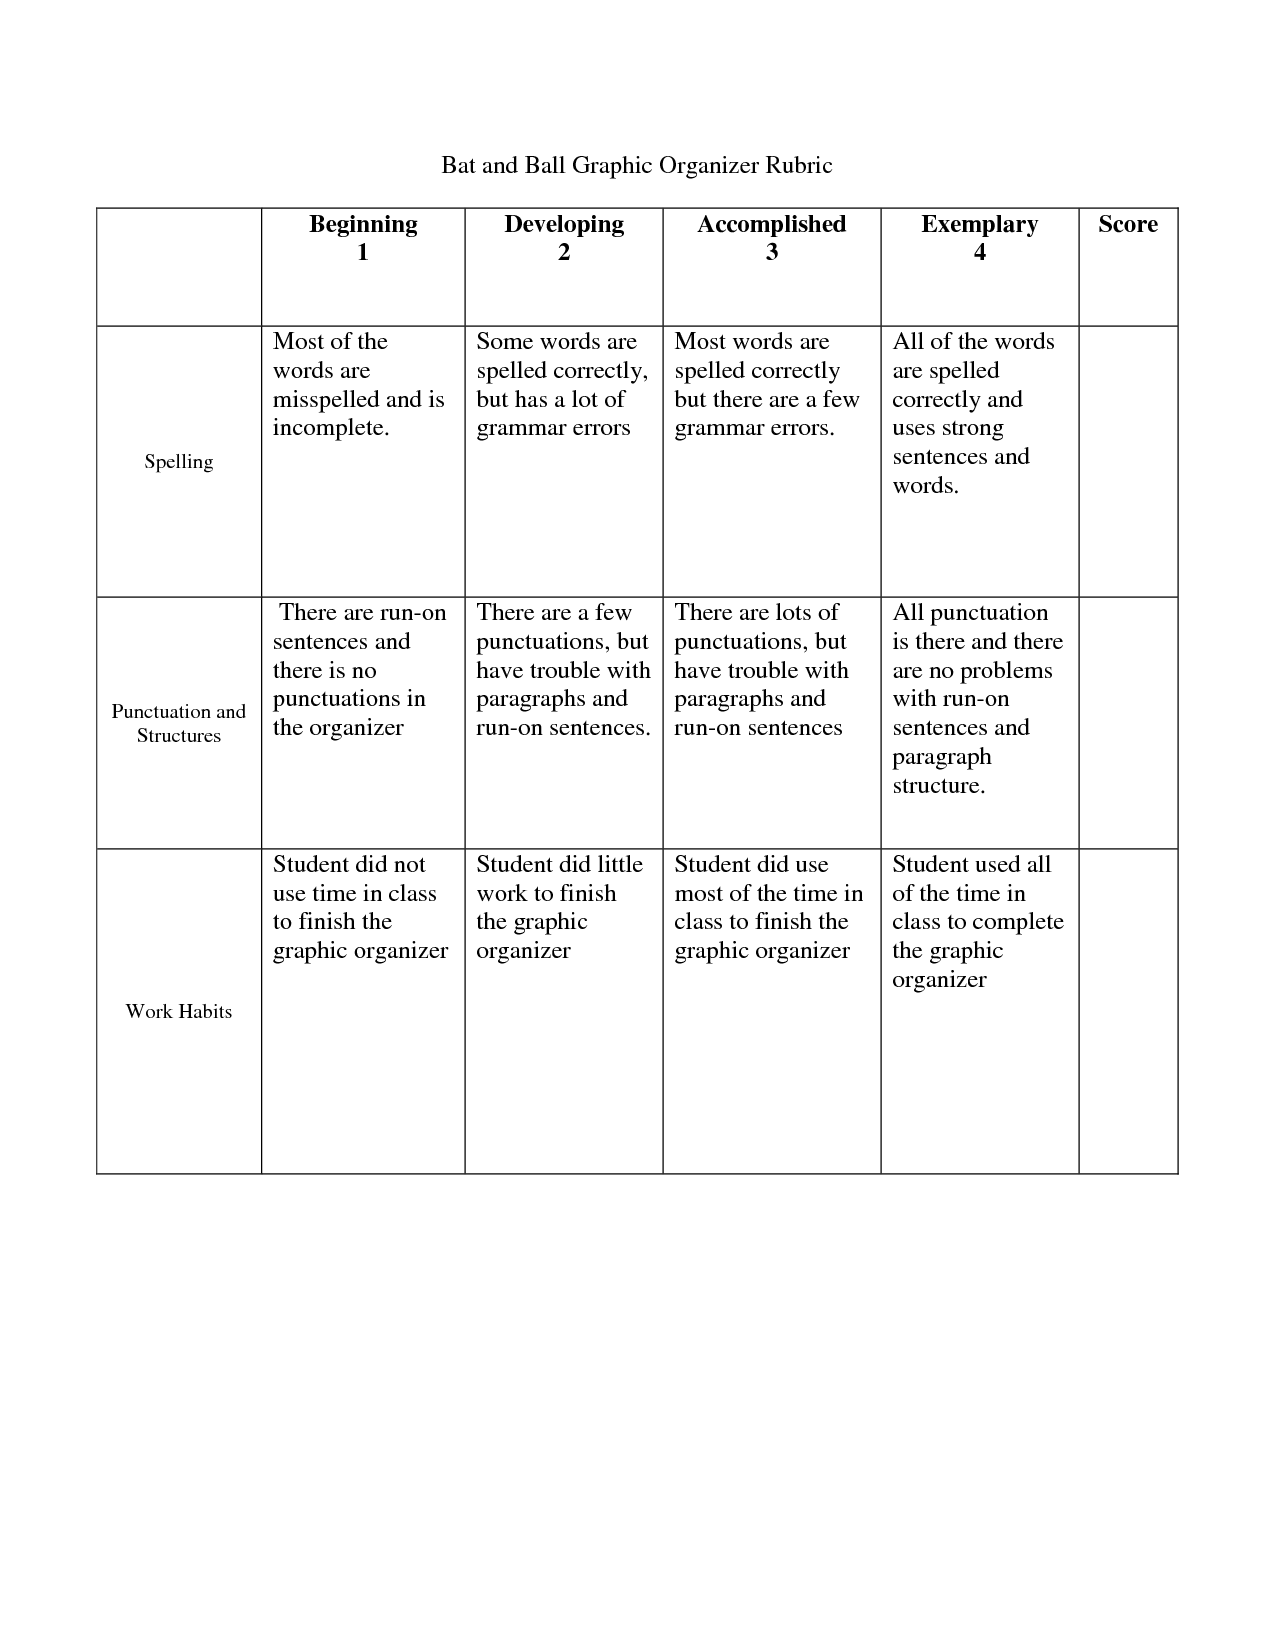 cause effect rubrics | graphic rubric | apple unit | pinterest